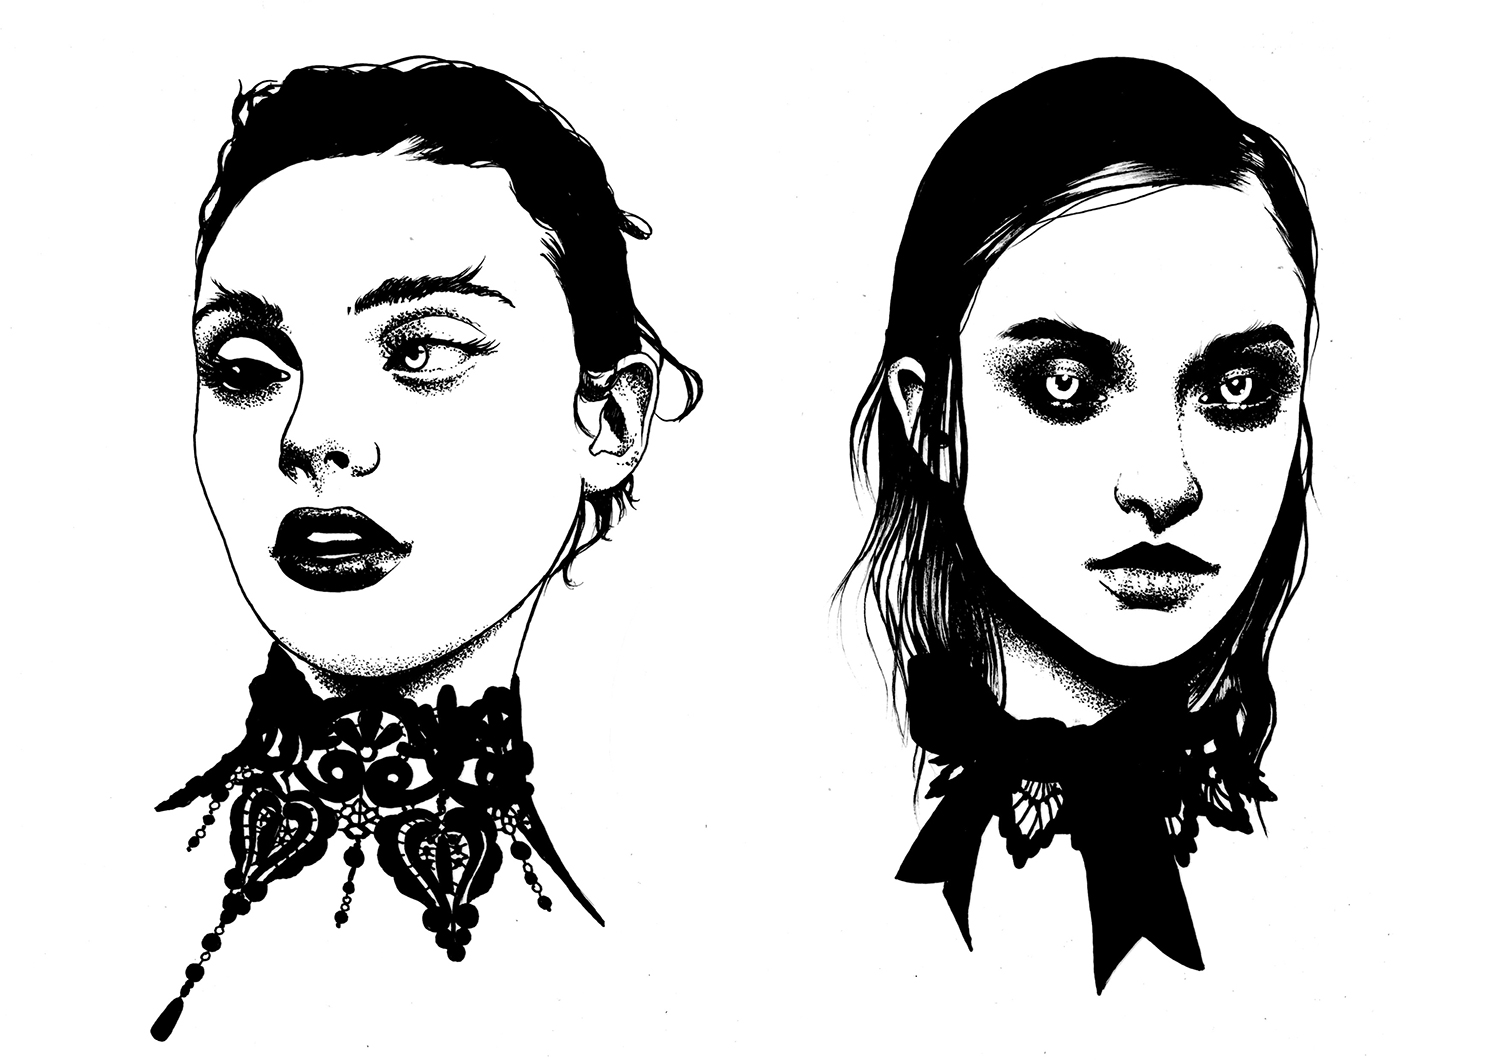 El Nigro - creepy portraits illustration